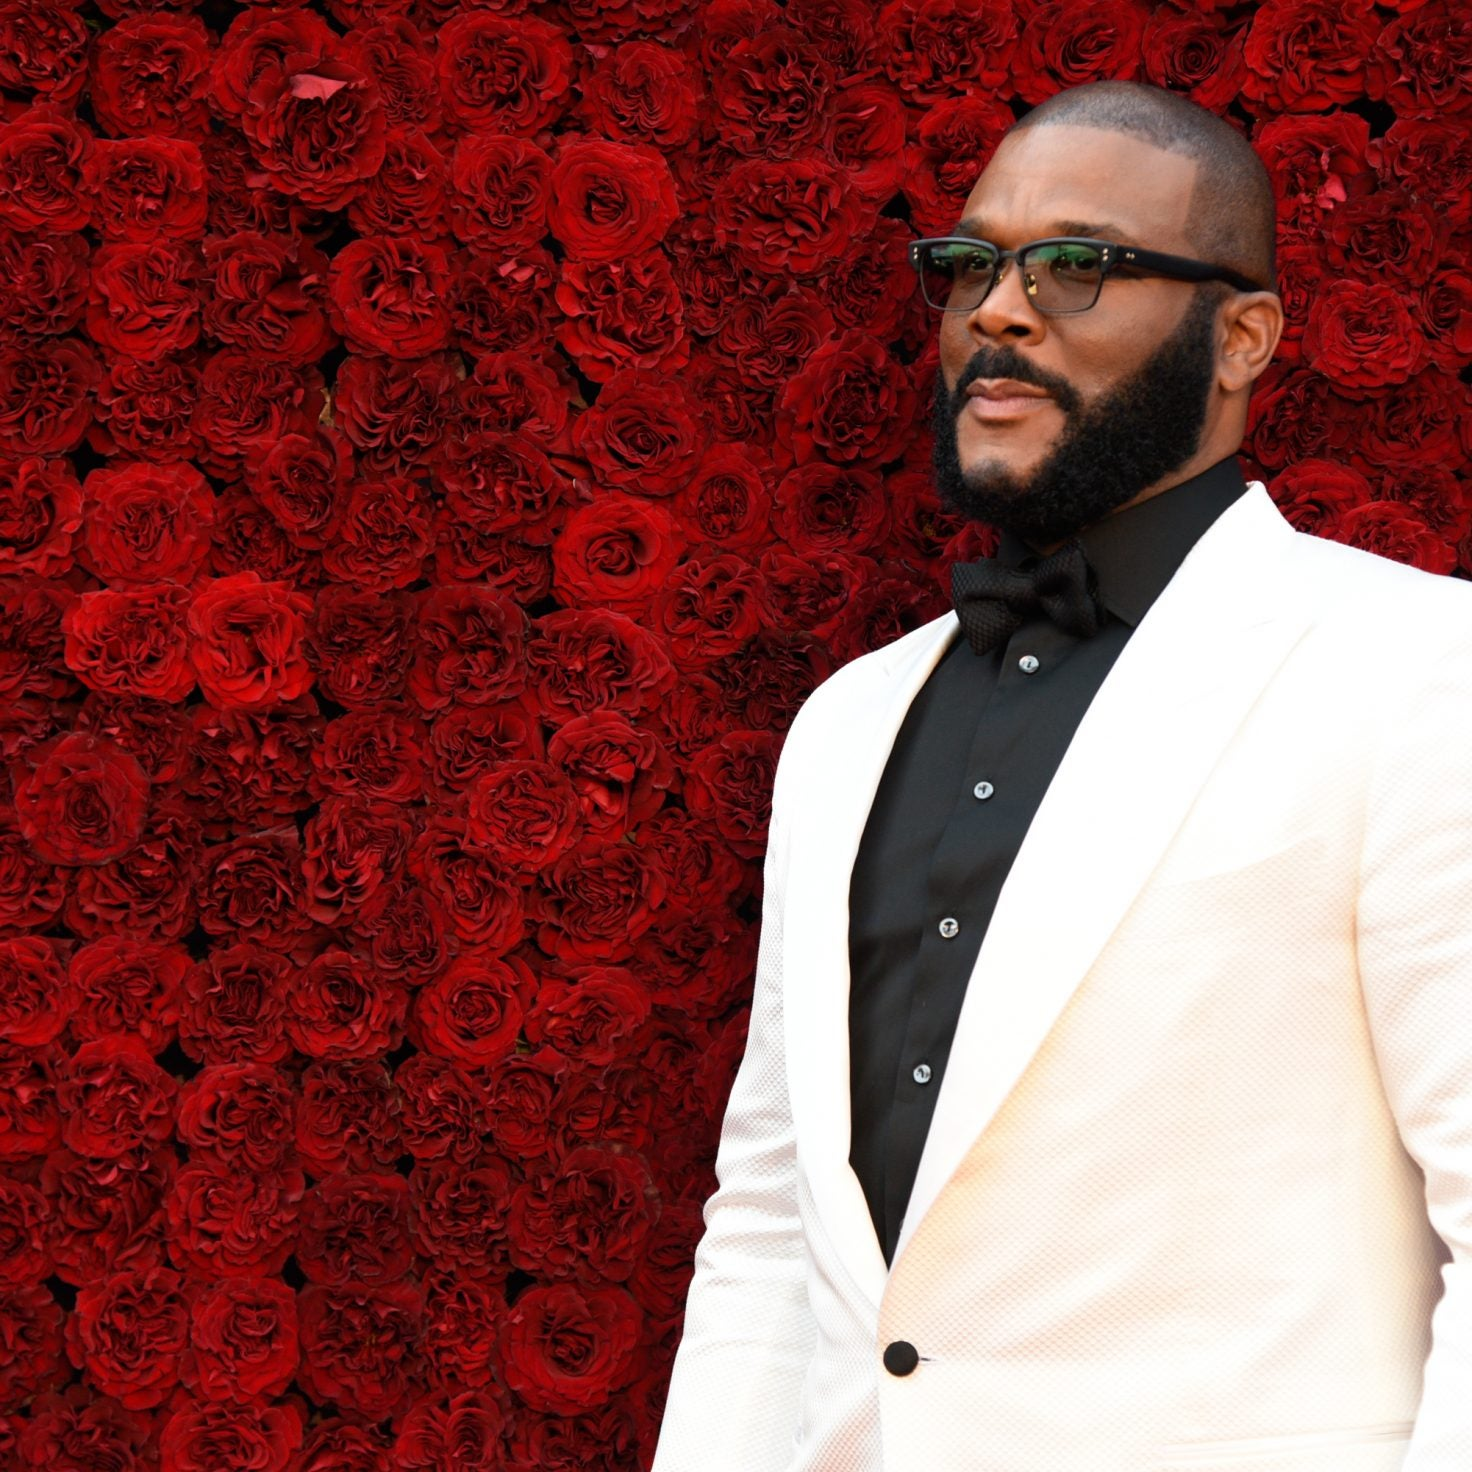 Tyler Perry Reveals He's Single In A Self-Reflective Social Media Post